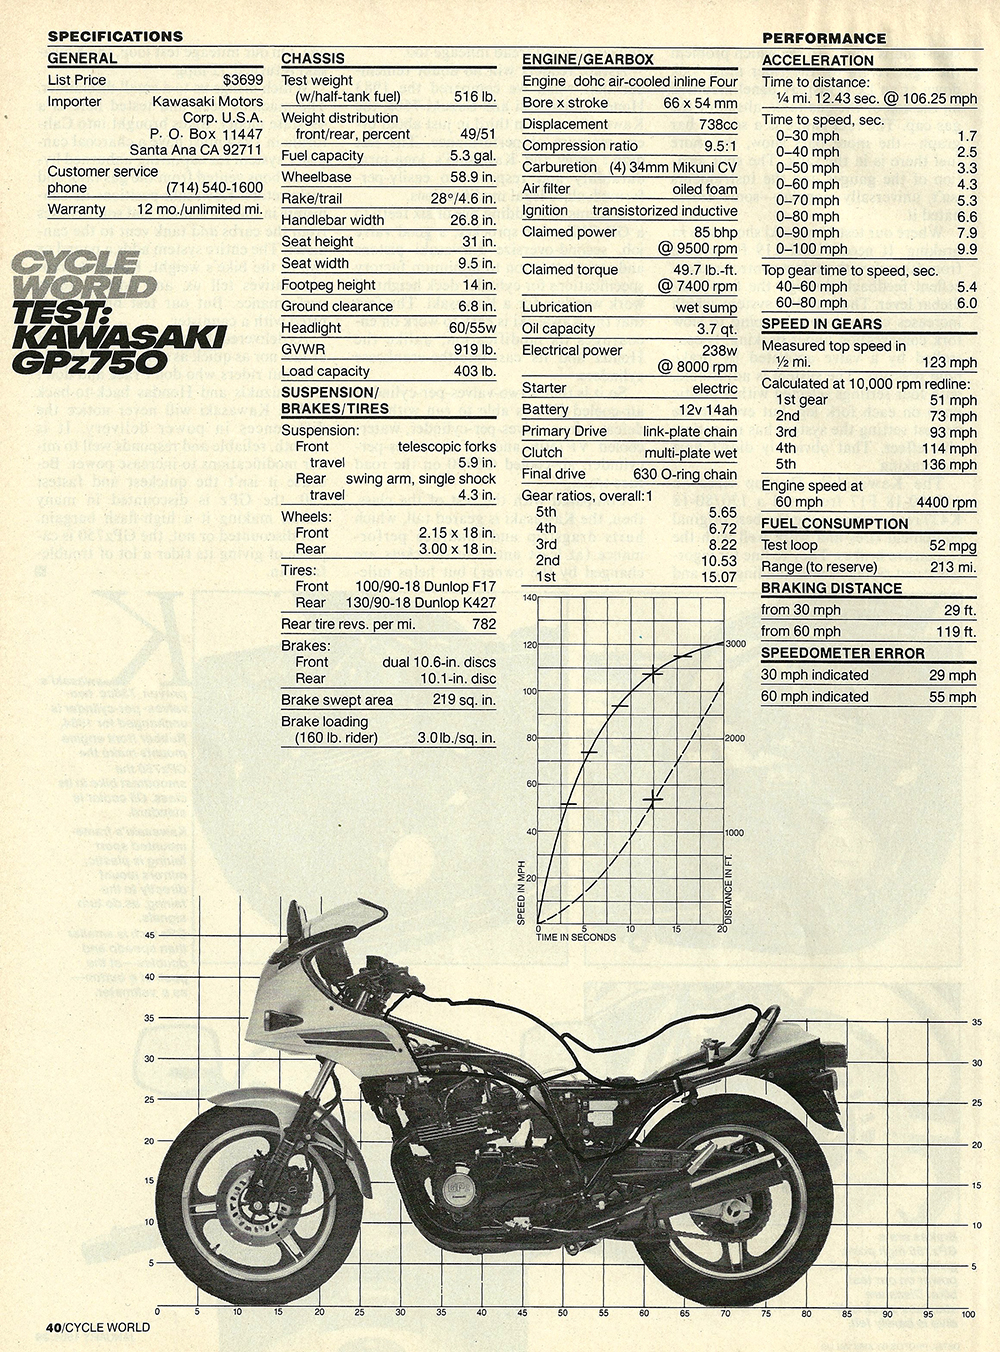 1984 Kawasaki GPz750 road test 05.jpg